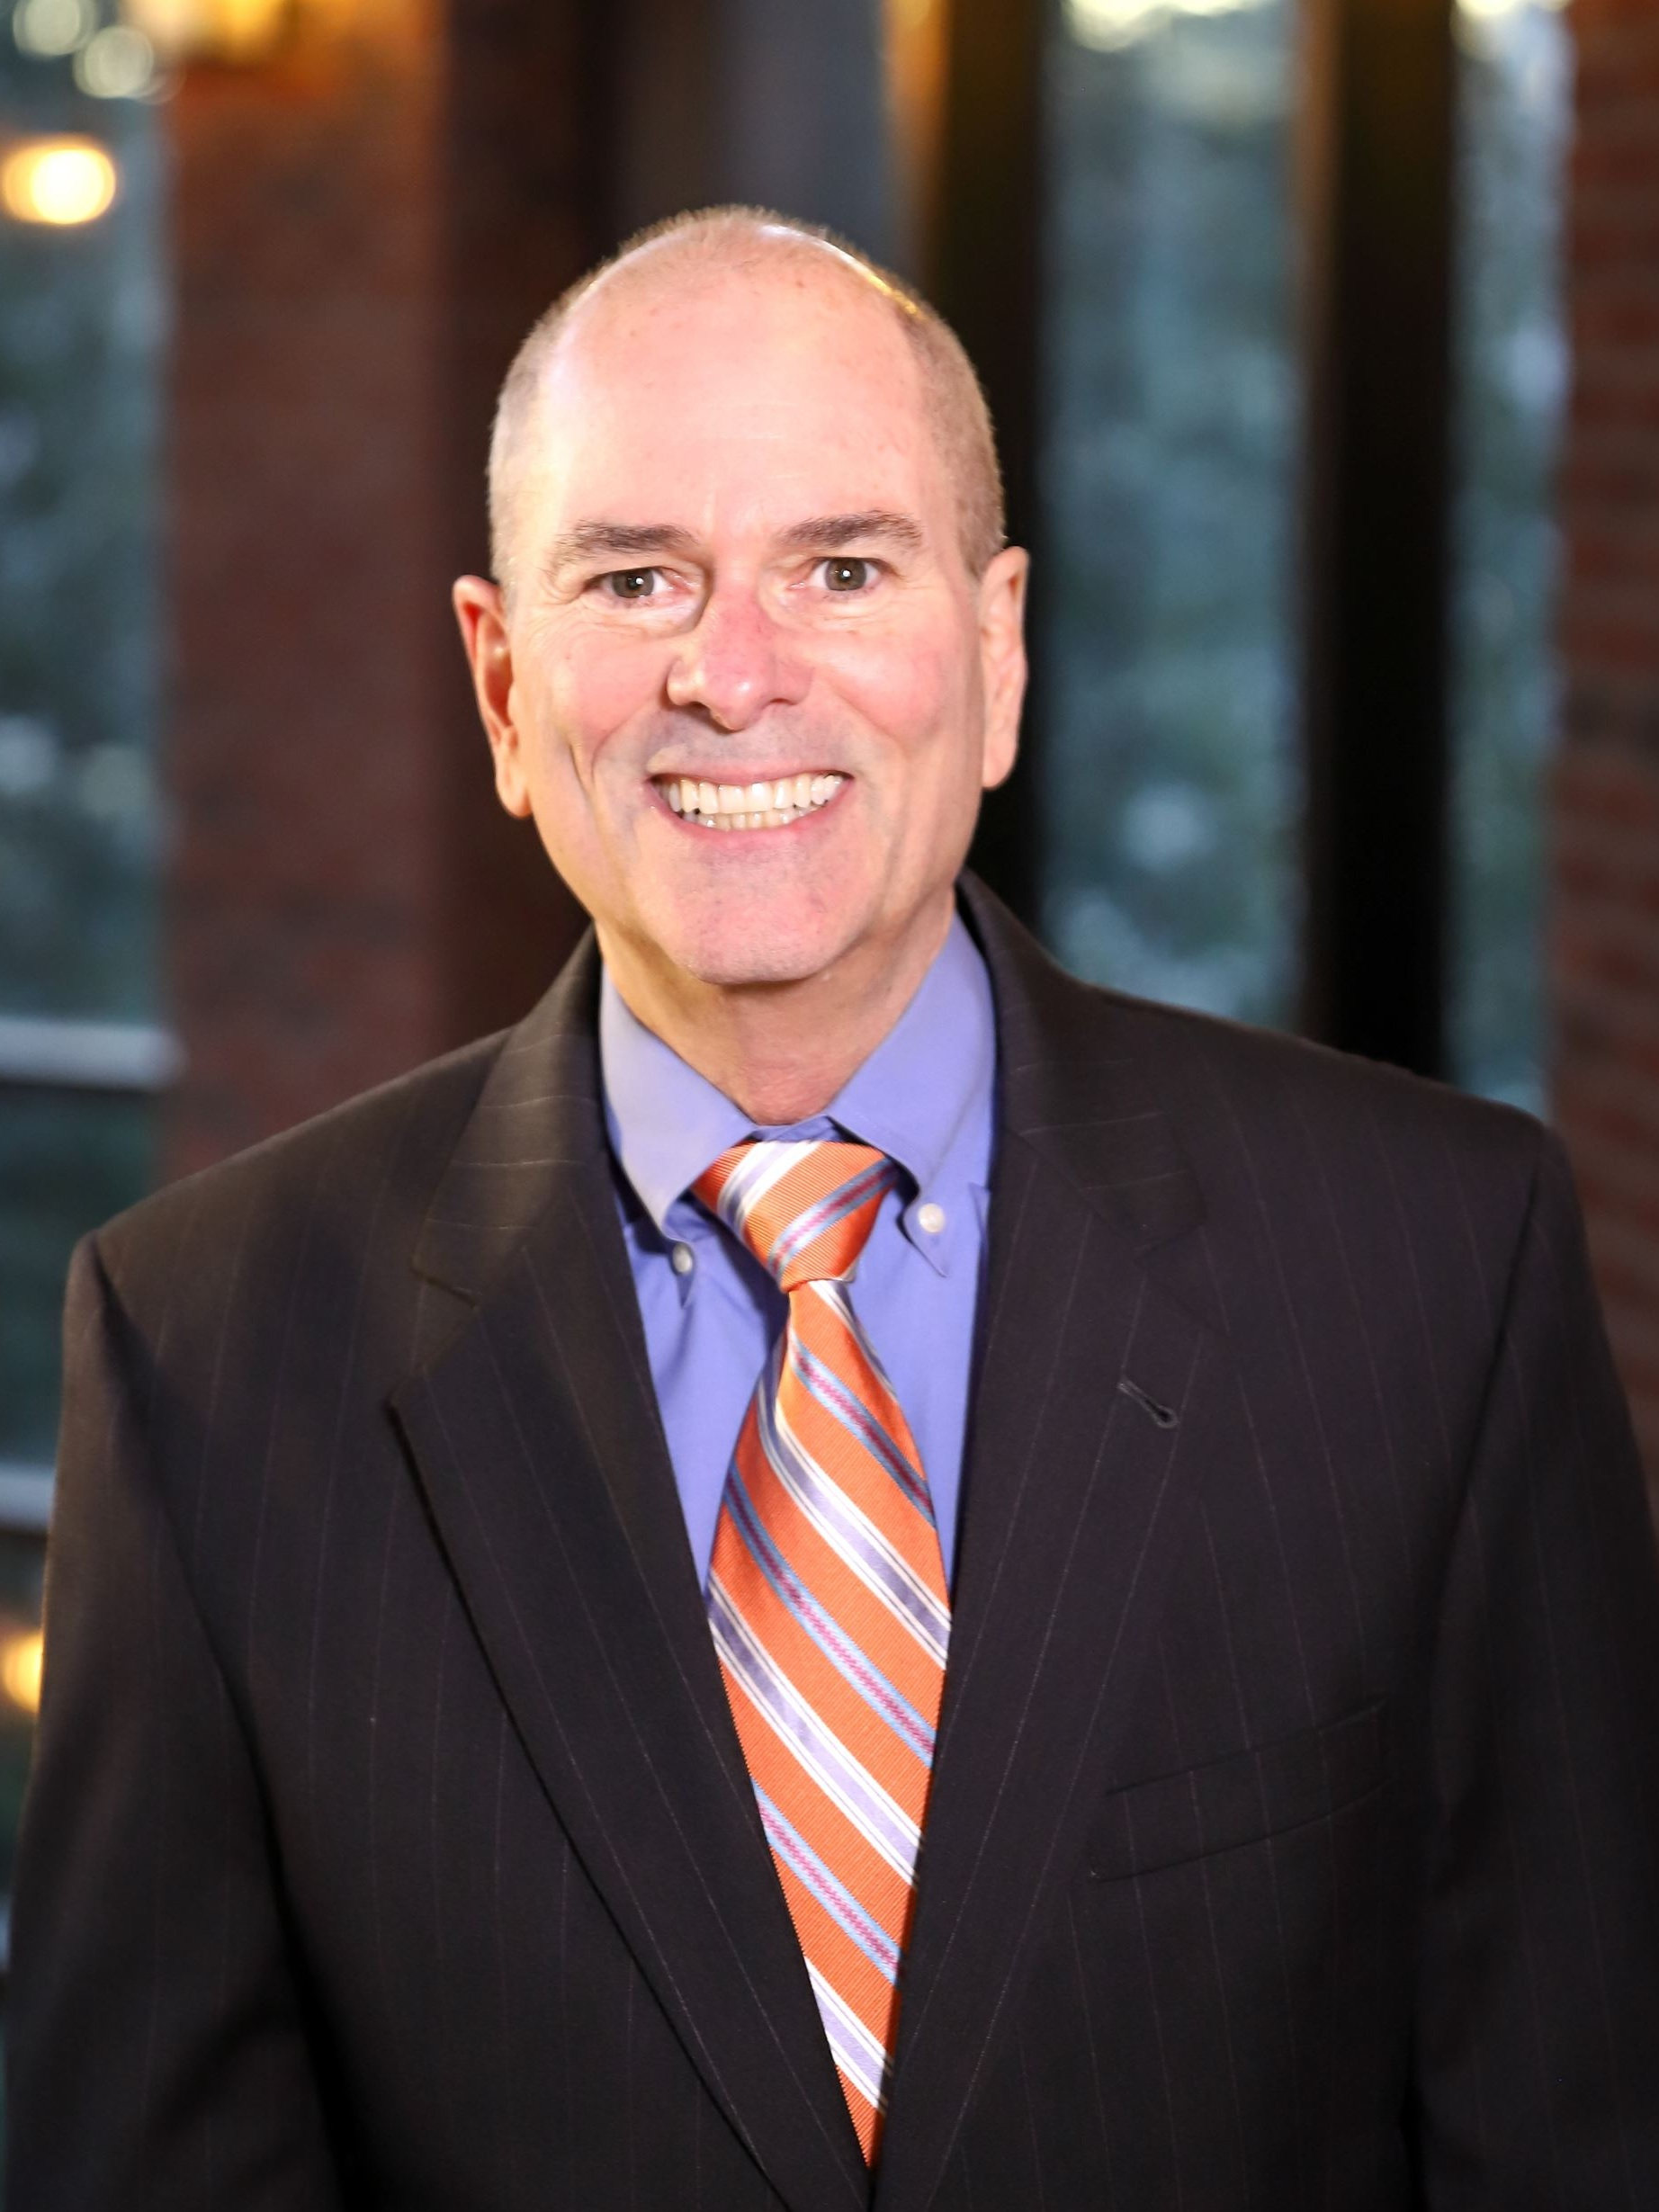 Chuck Paul - Current City Council Member and Retired Marketing Business Owner